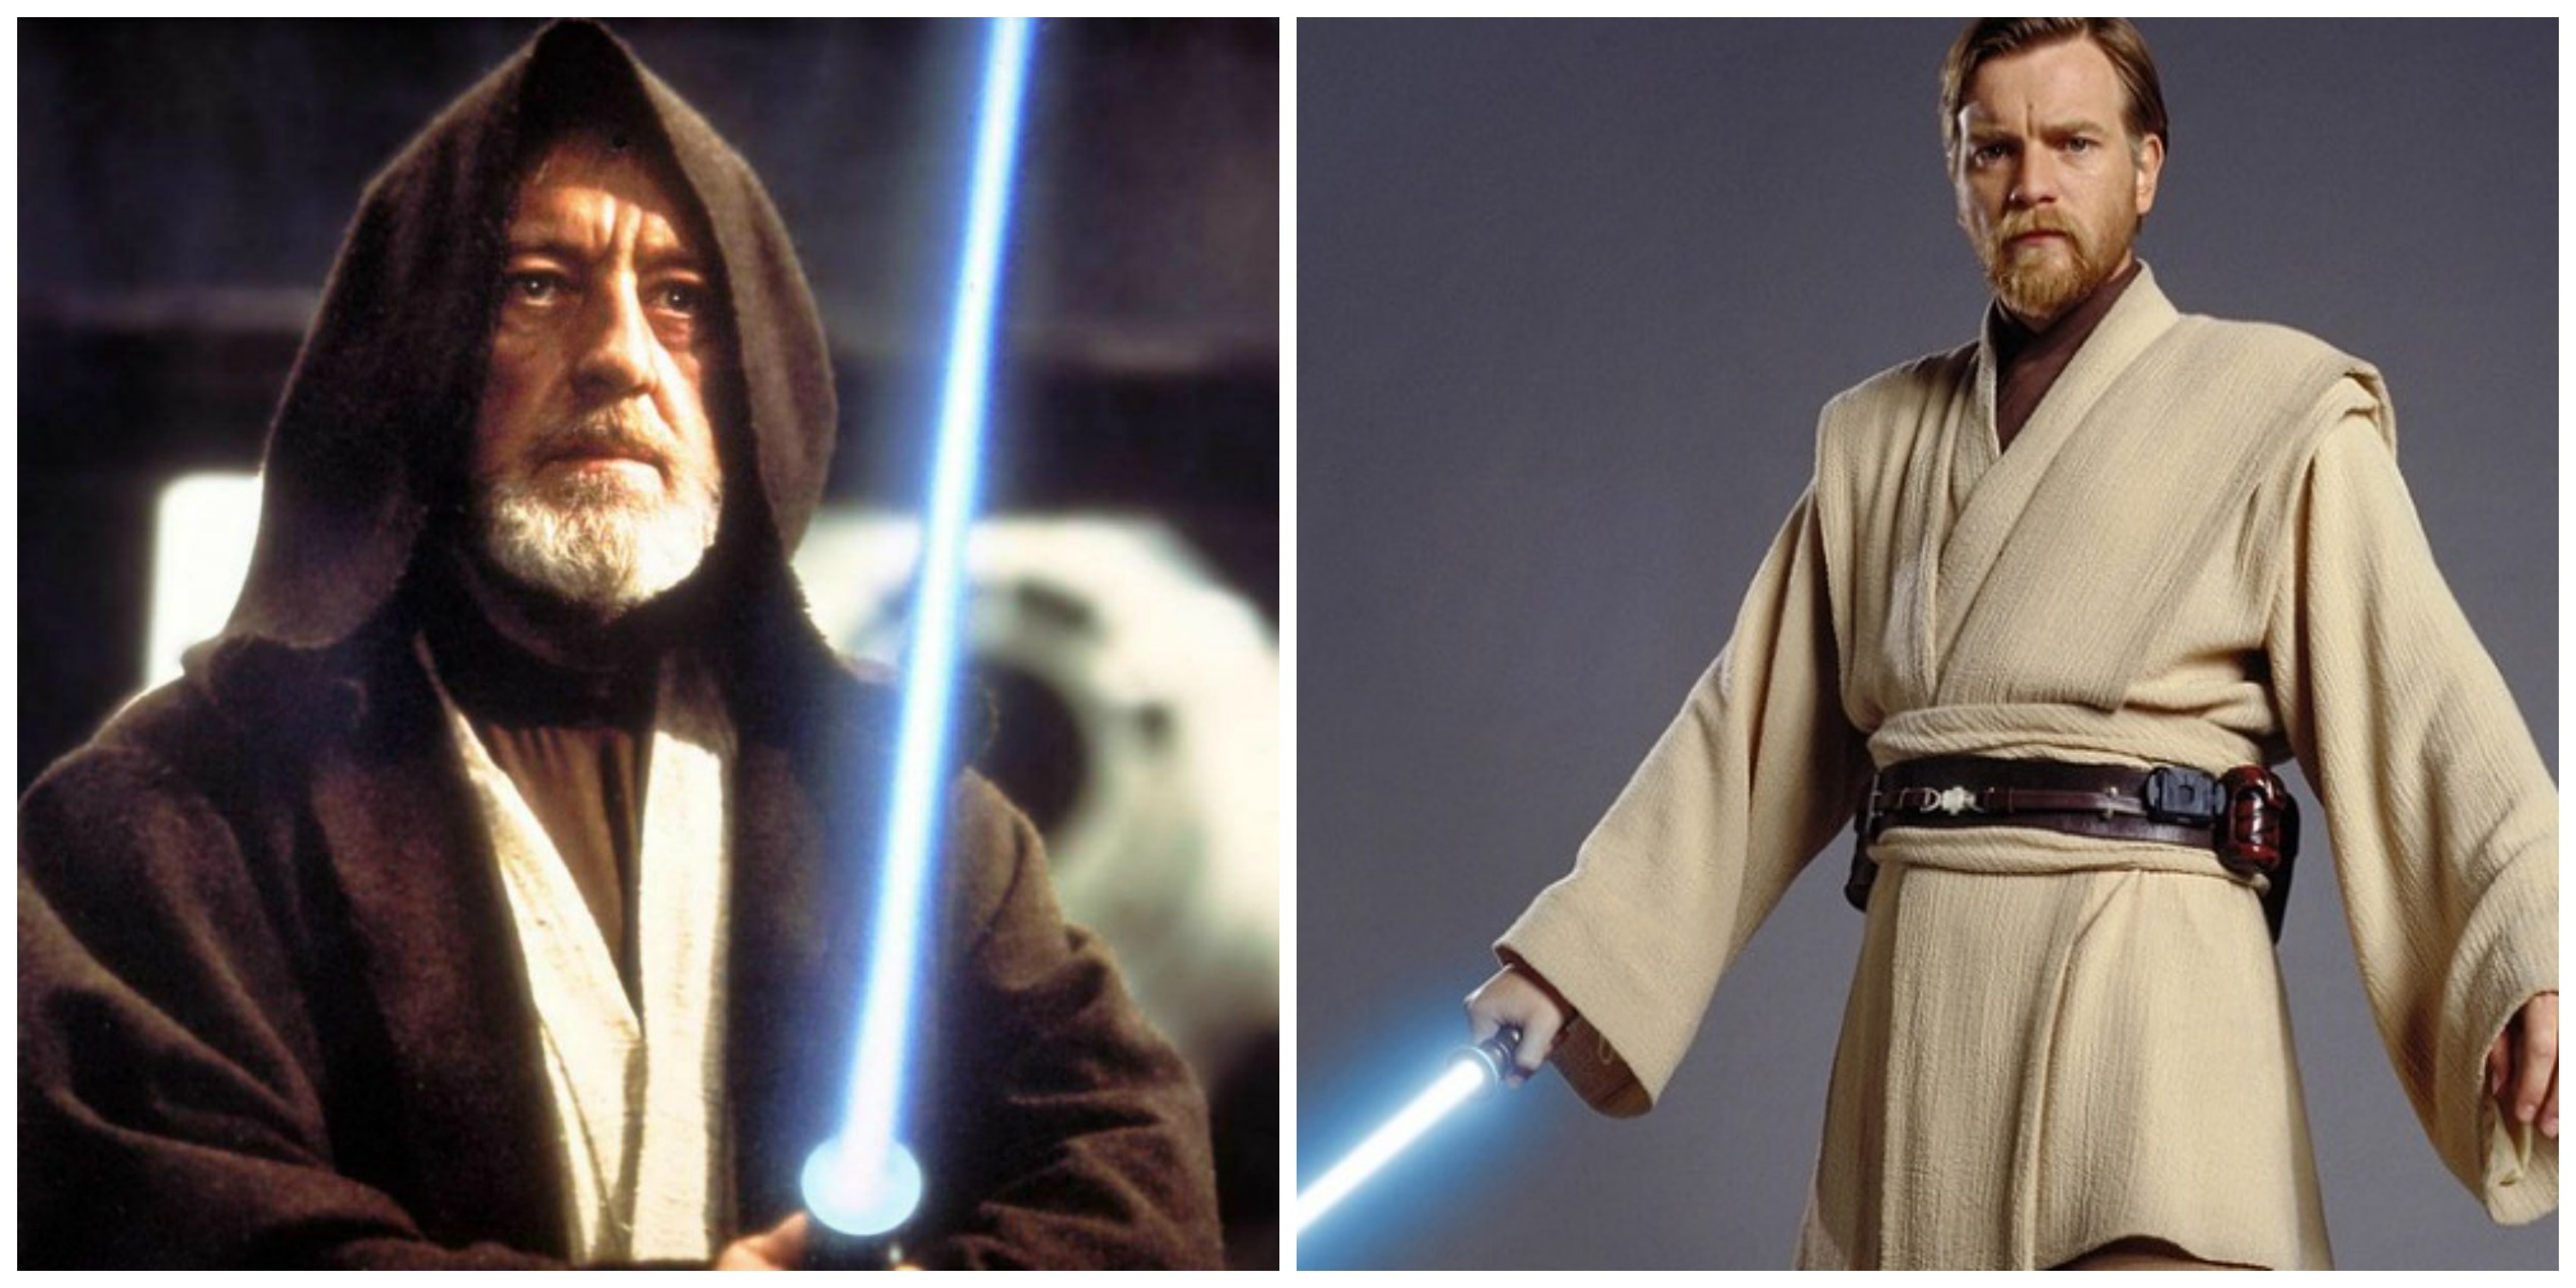 A film dedicated to Obi-Wan Kenobi would be in preparation